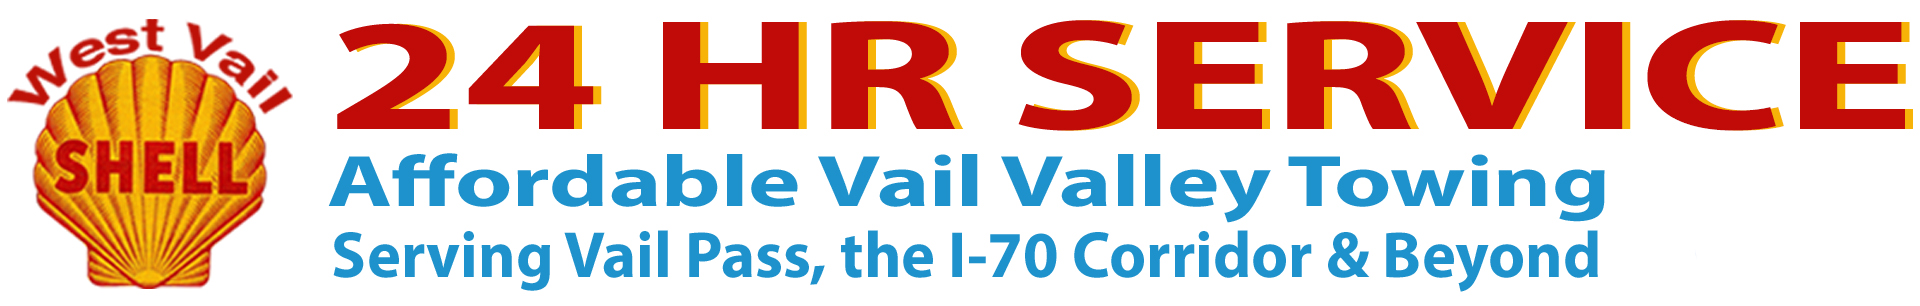 West Vail Shell – 24 HR SERVICE Logo